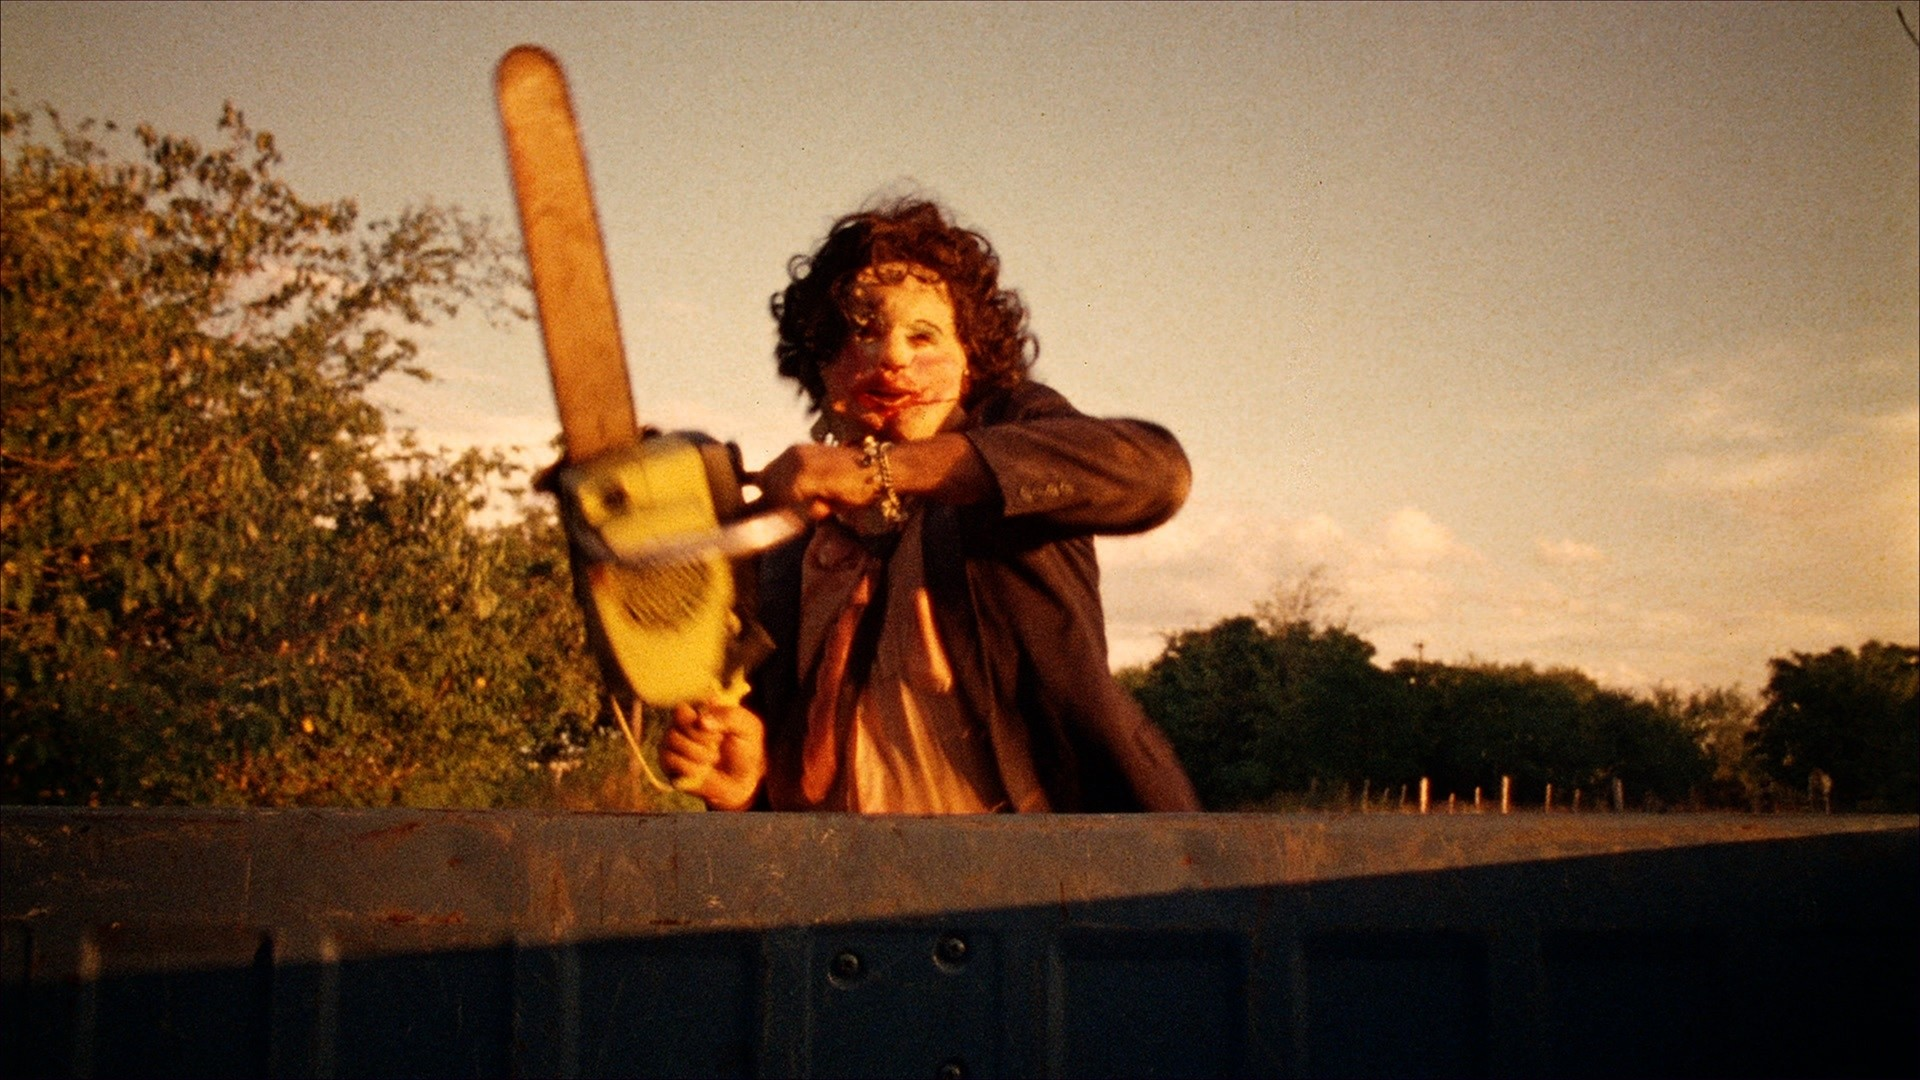 Leatherface Wallpaper, A wallpaper of Leatherface from 'The Texas Chain Saw  Massacre'.